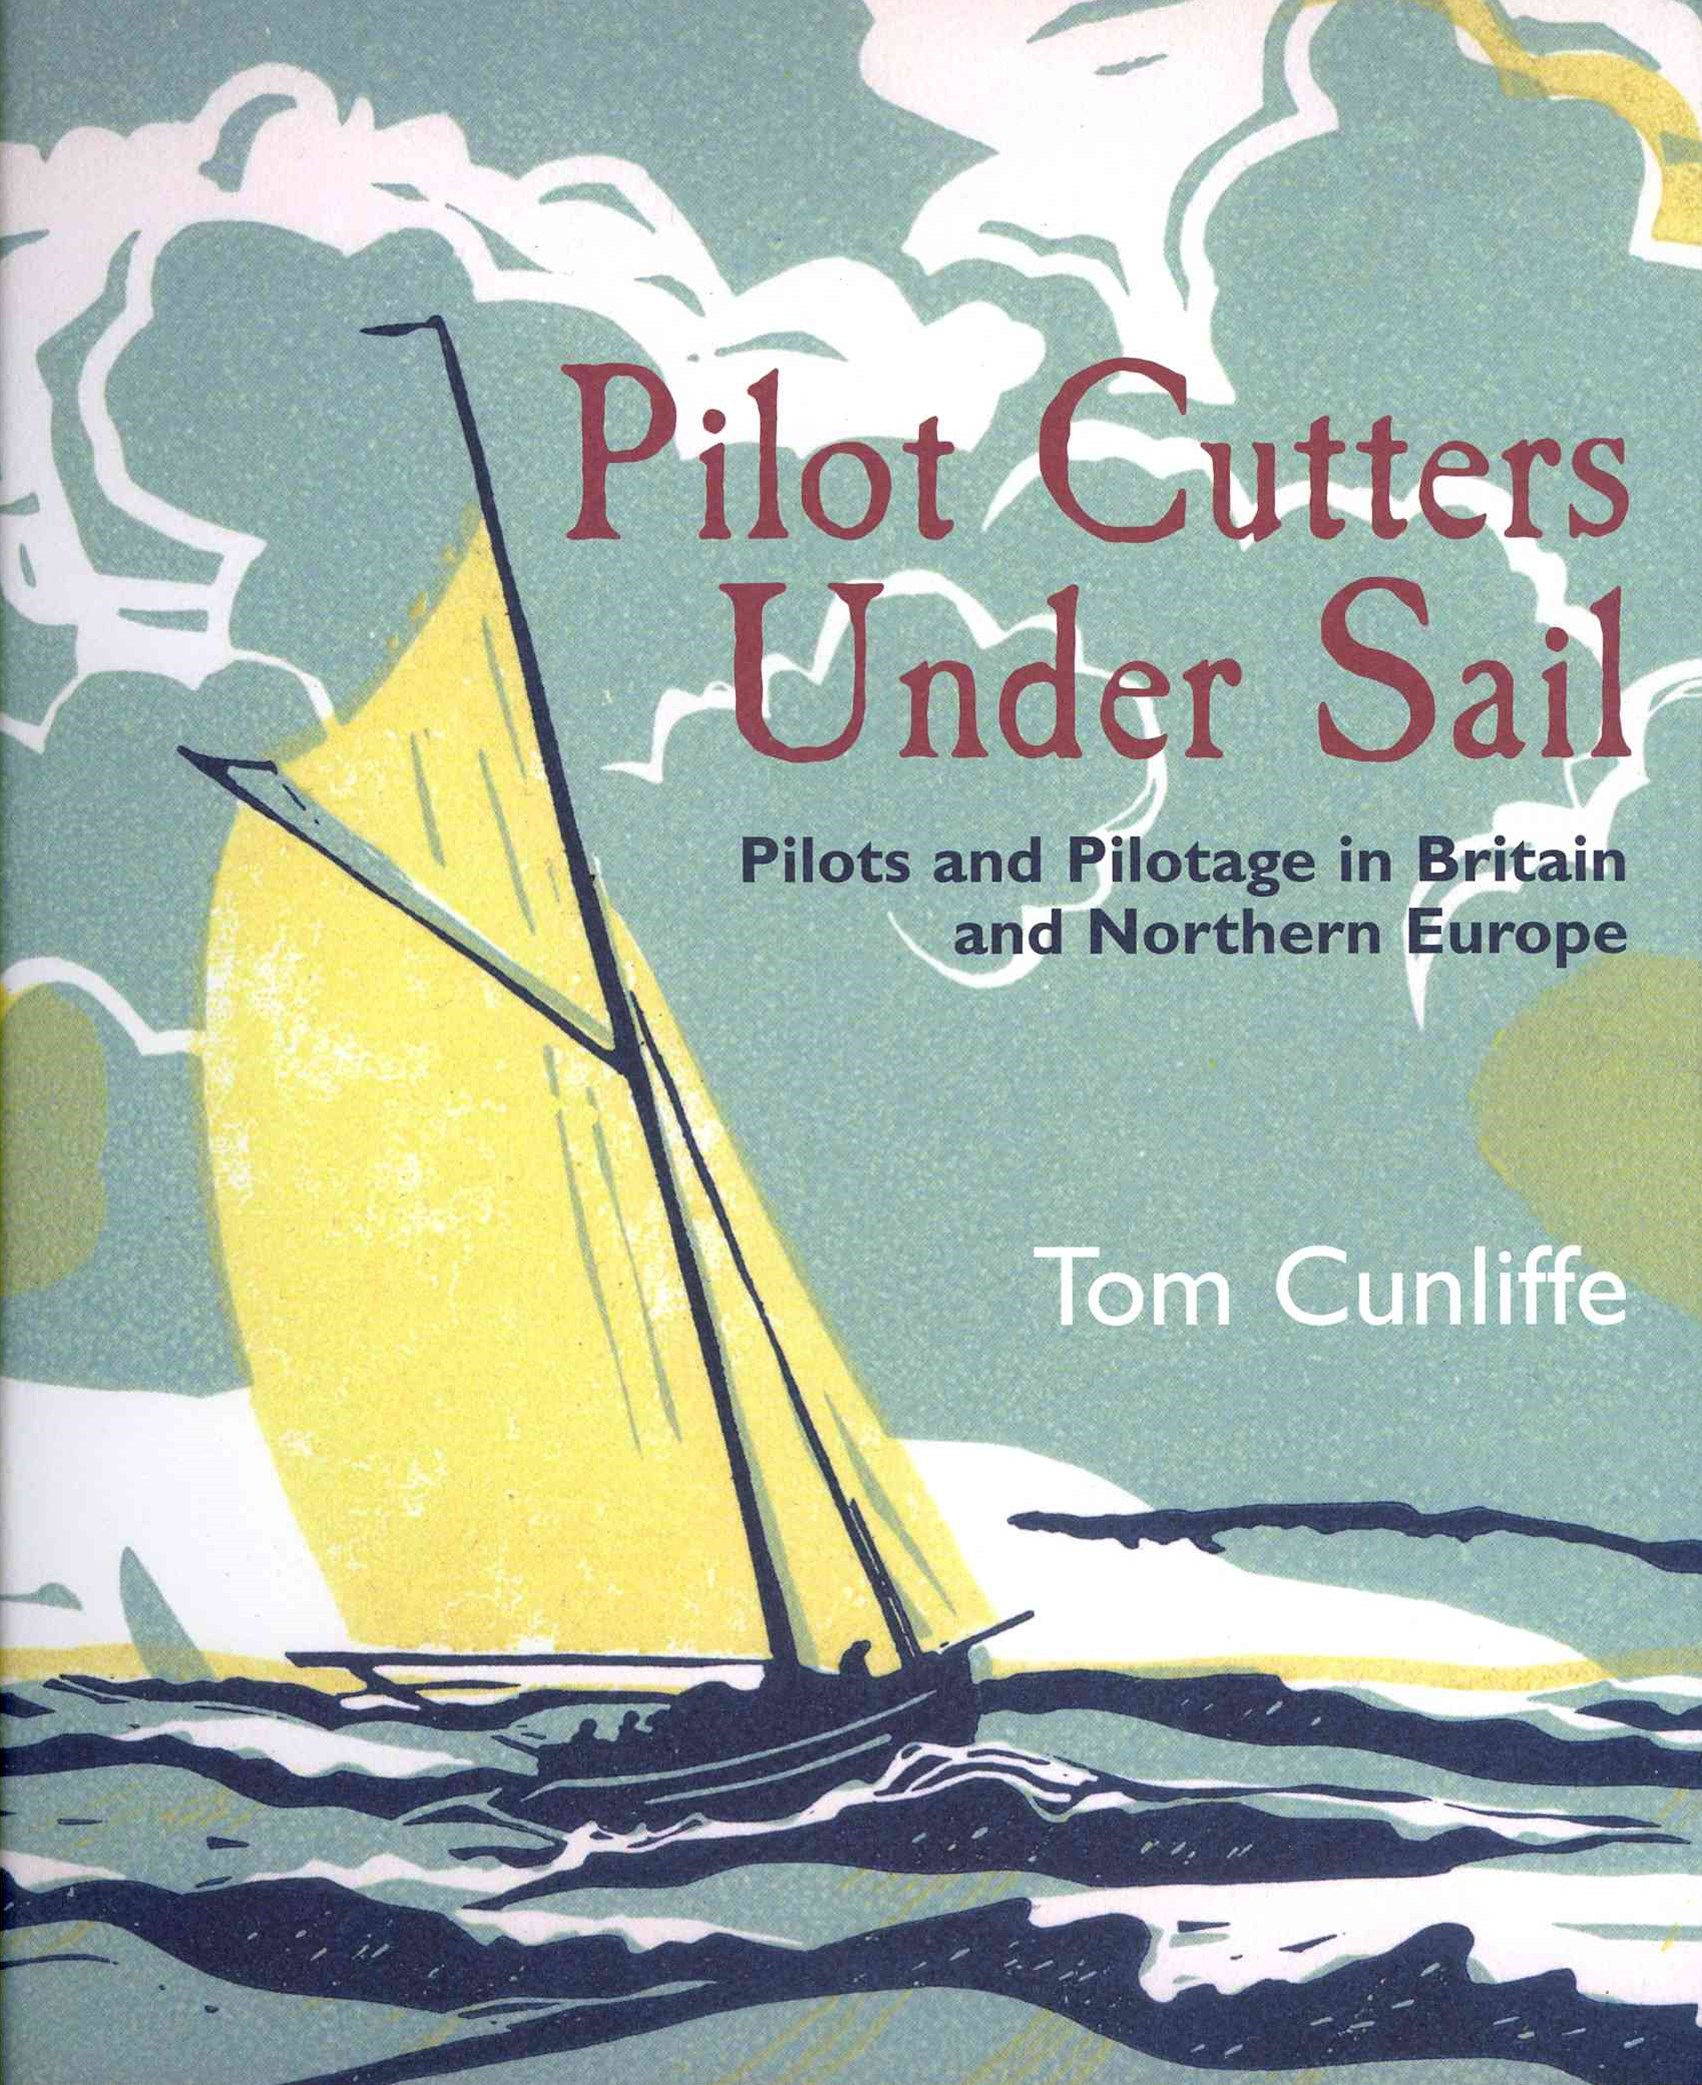 Pilot Cutters Under Sail: Pilots and Pilotage in Britain and Northern Europe